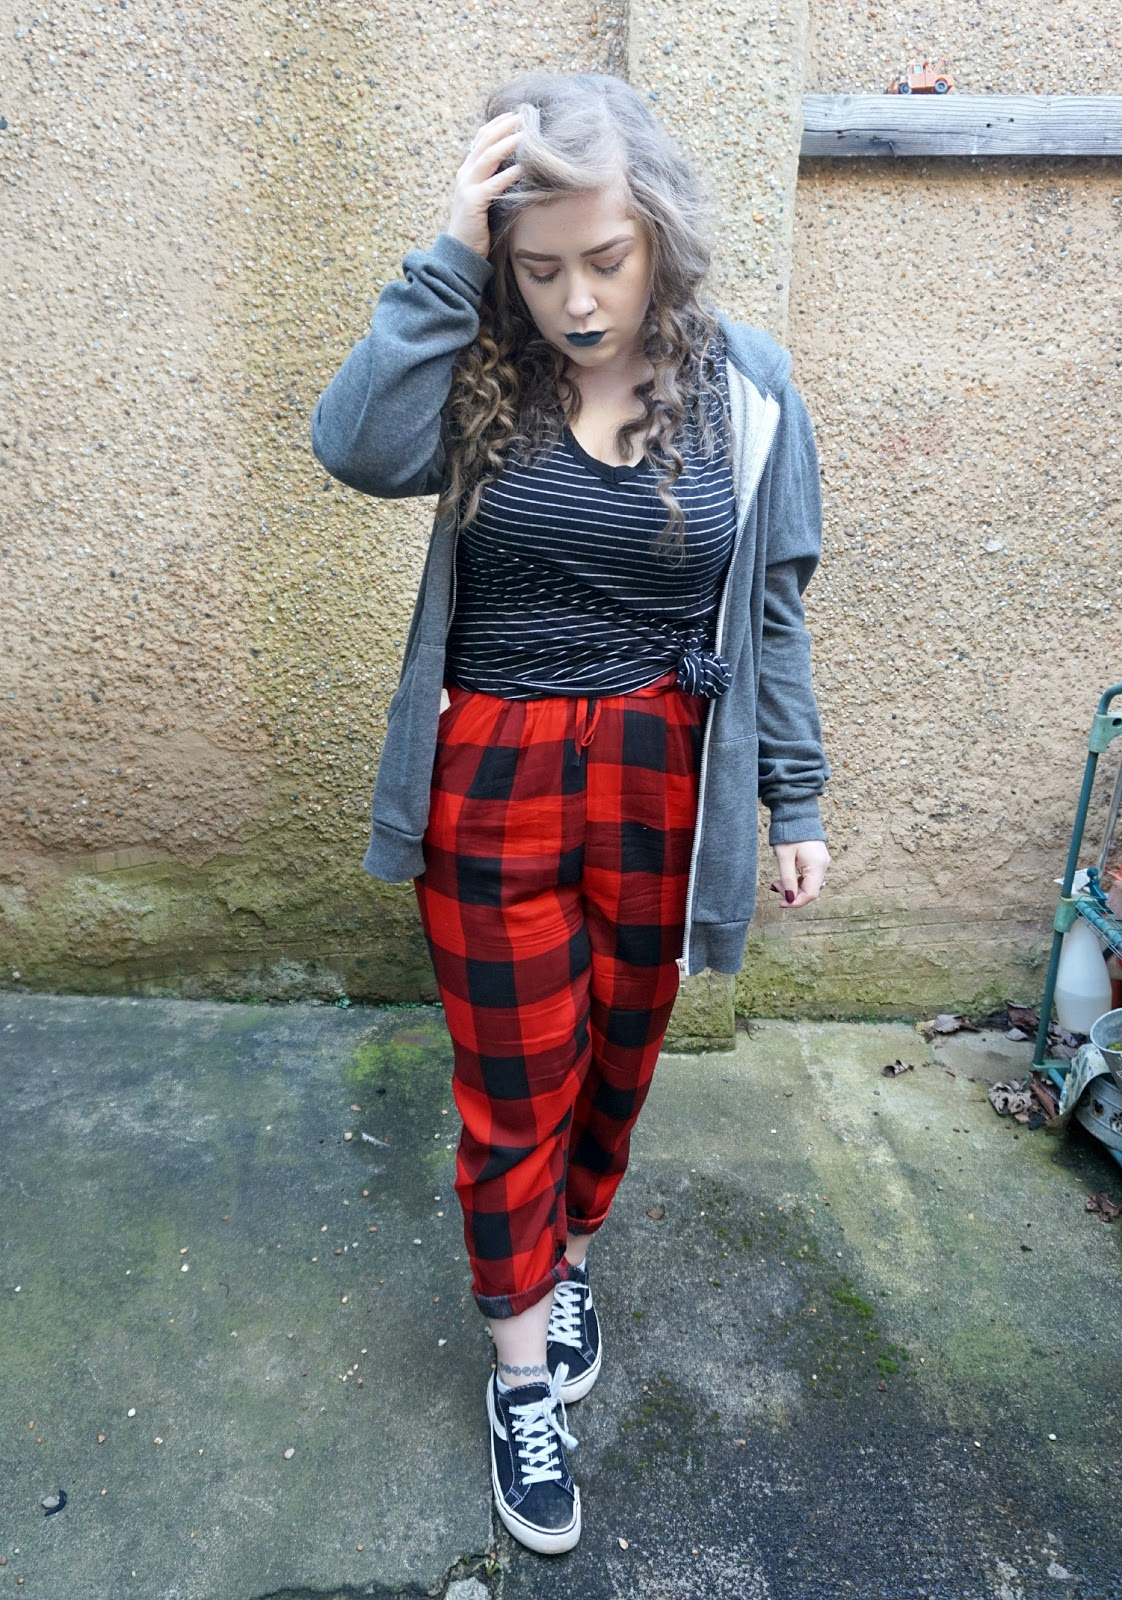 uk bloggers, alt style, alternative style, uk fashion bloggers, street style, grunge style